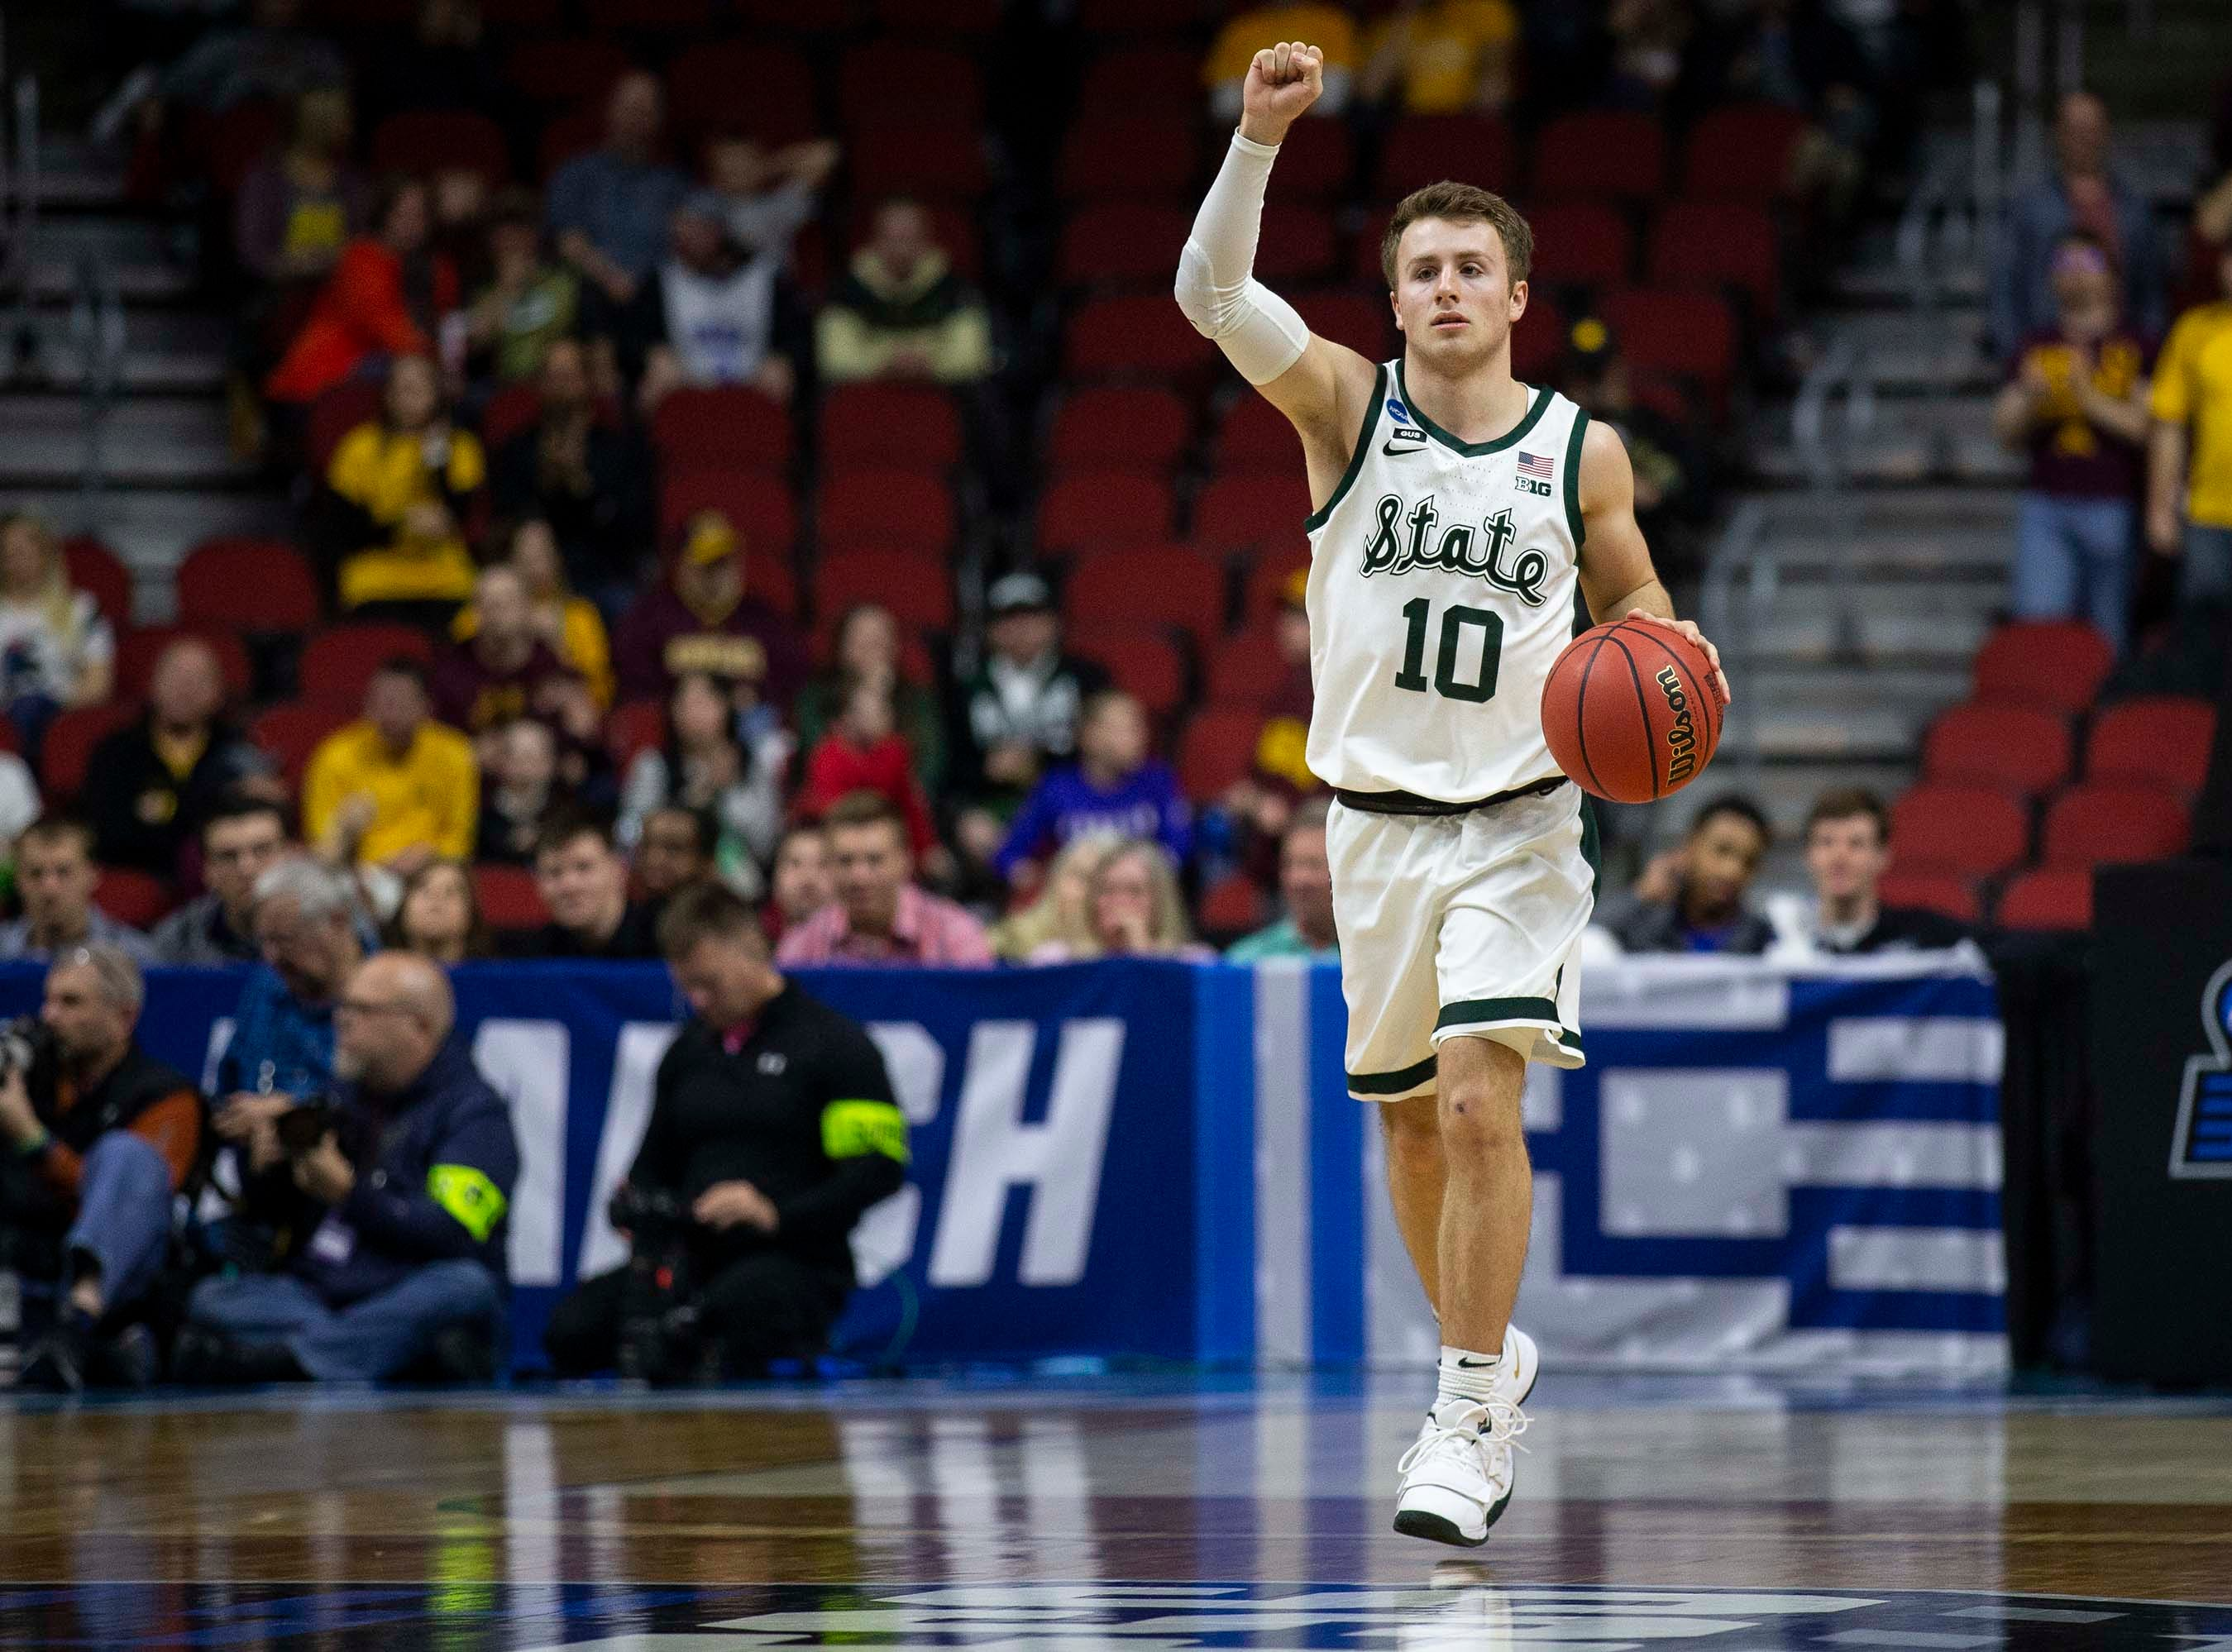 Michigan State's Jack Hoiberg brings the ball down the court during the NCAA Tournament second-round match-up between Minnesota and Michigan State on Saturday, March 23, 2019, in Wells Fargo Arena in Des Moines, Iowa.